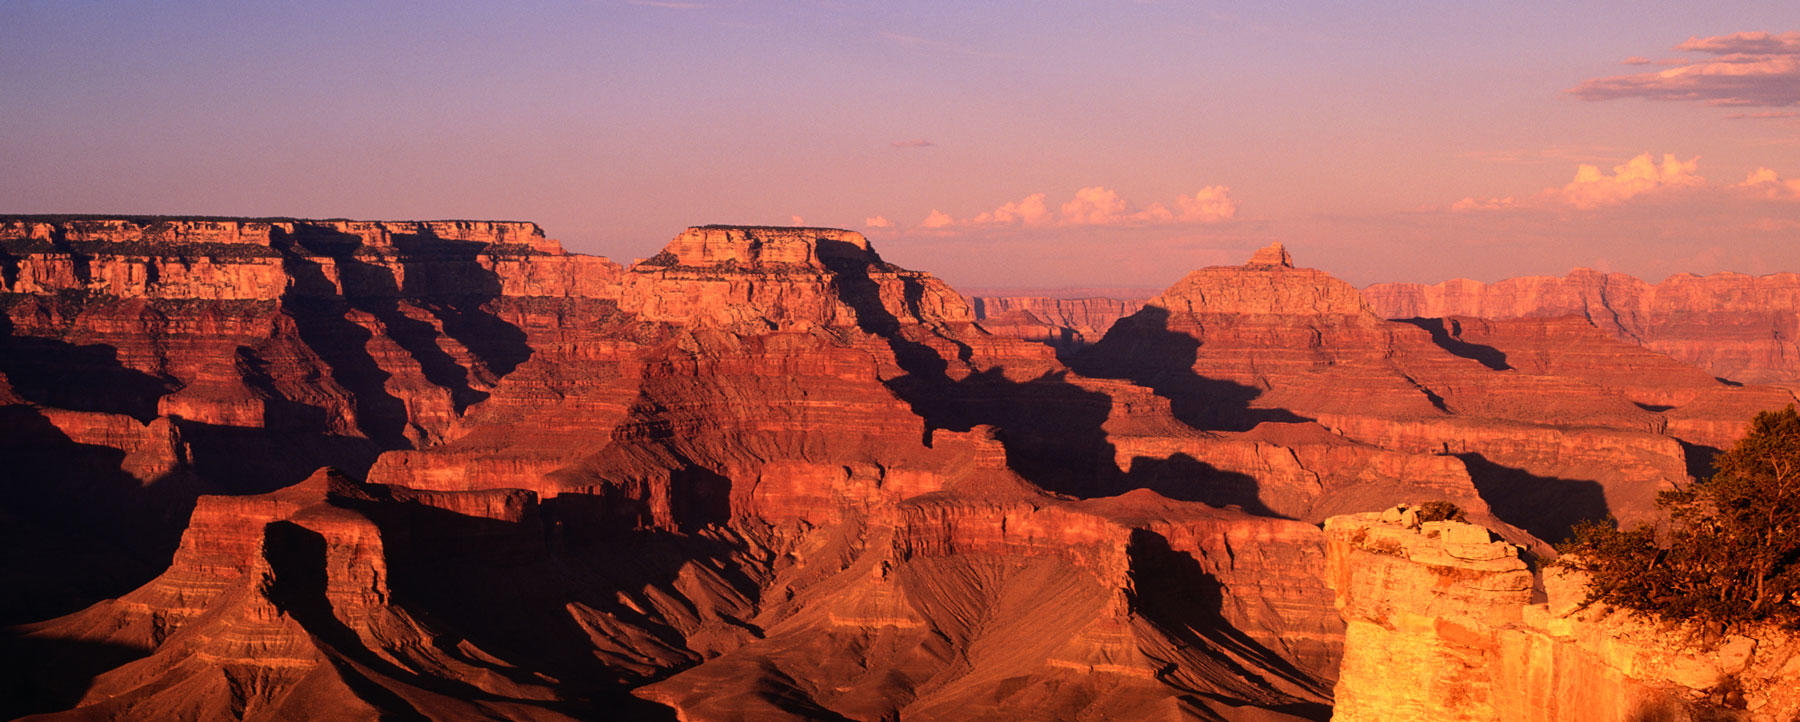 Panoramic of Grand Canyon National Park in Arizona.